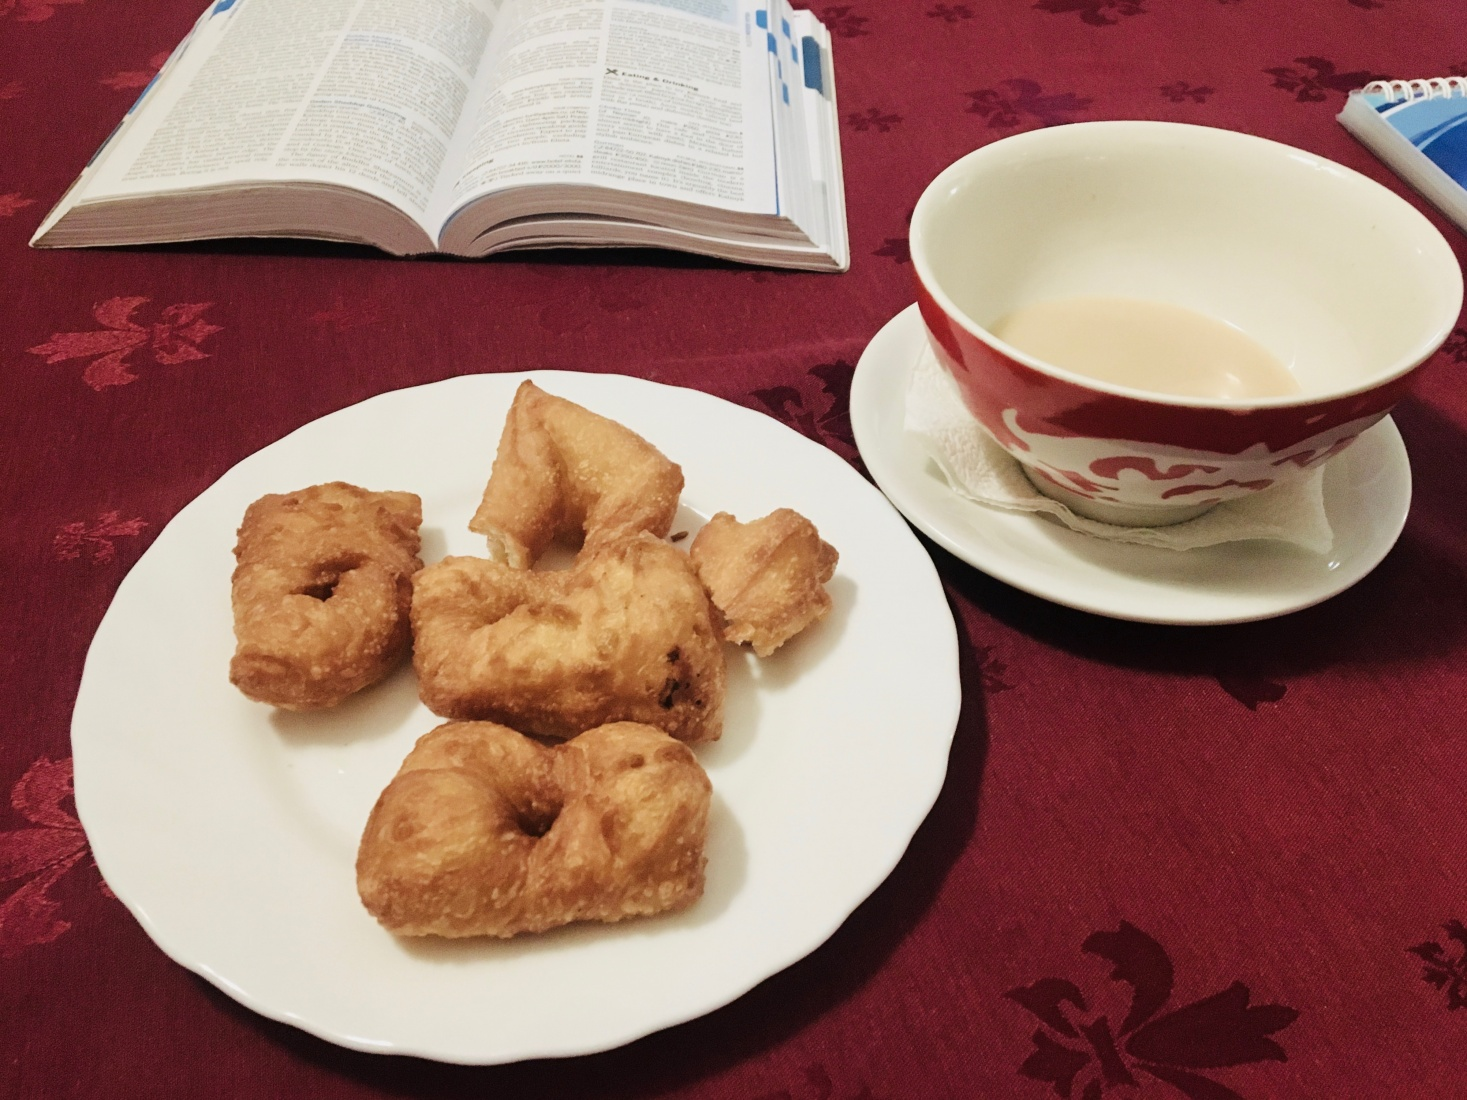 Kalmyk tea and pieces of fried dough, bortsg, served in Elista, Russia.